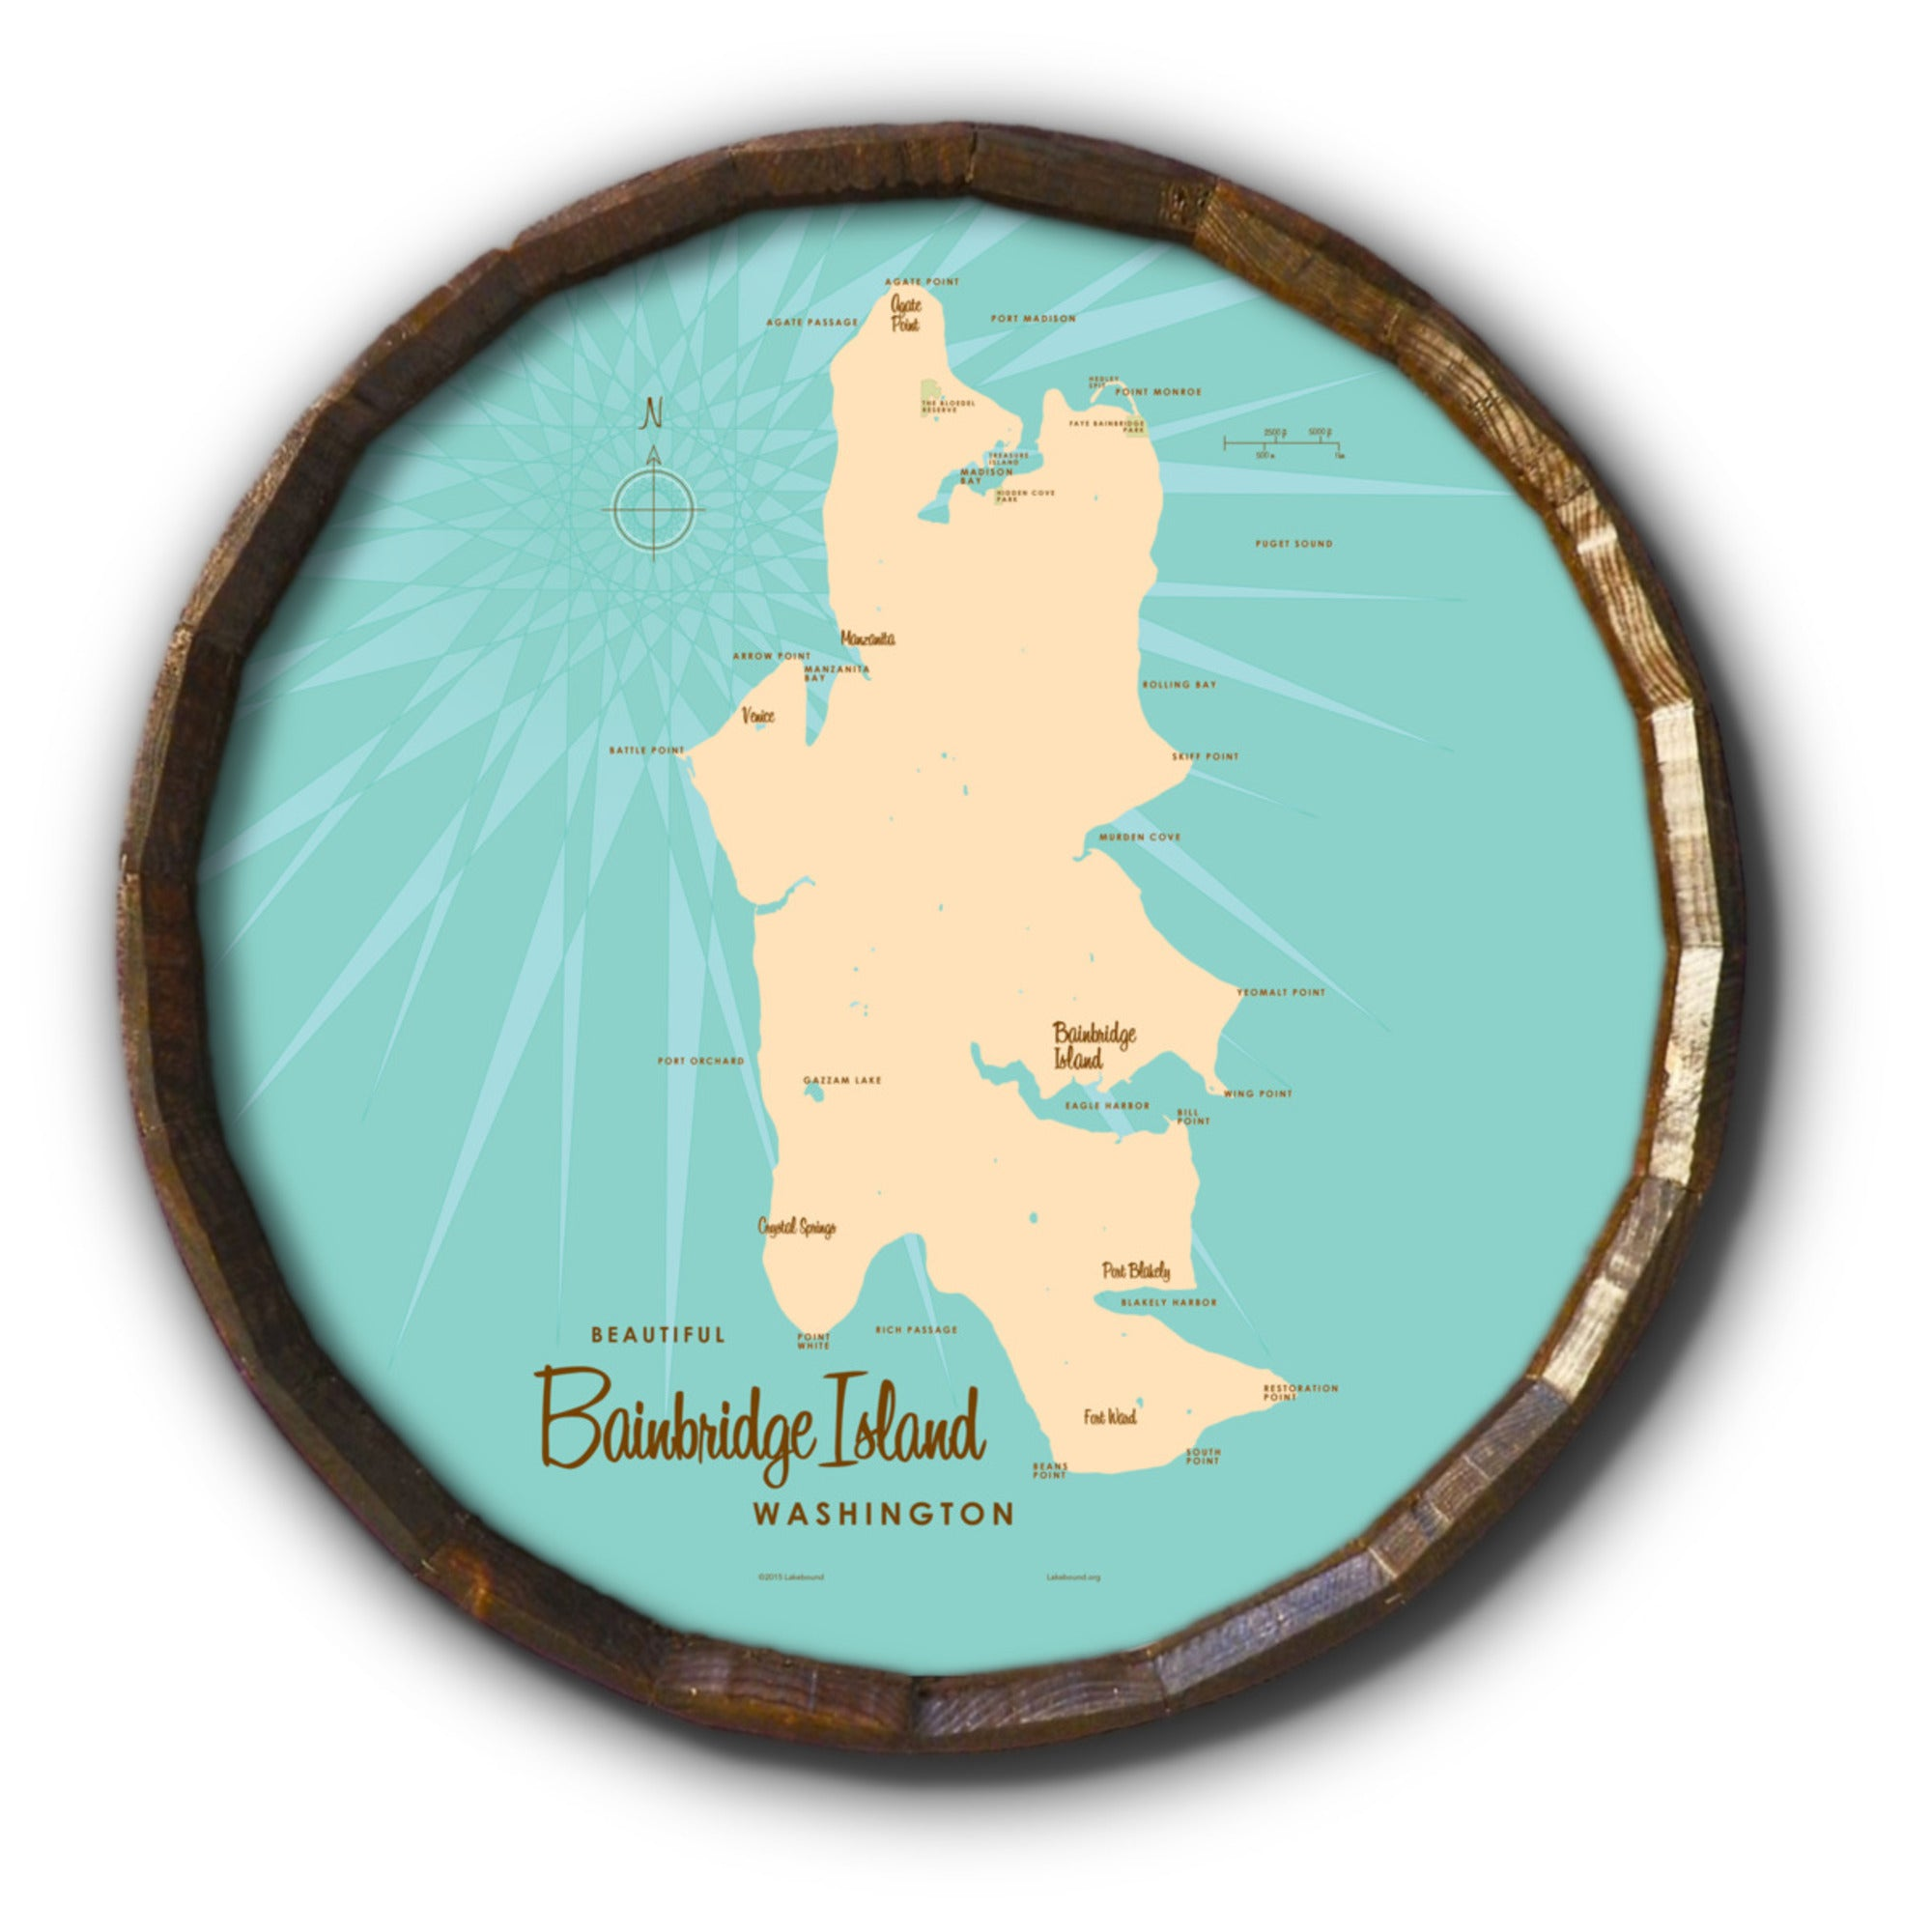 Bainbridge Island Washington, Barrel End Map Art